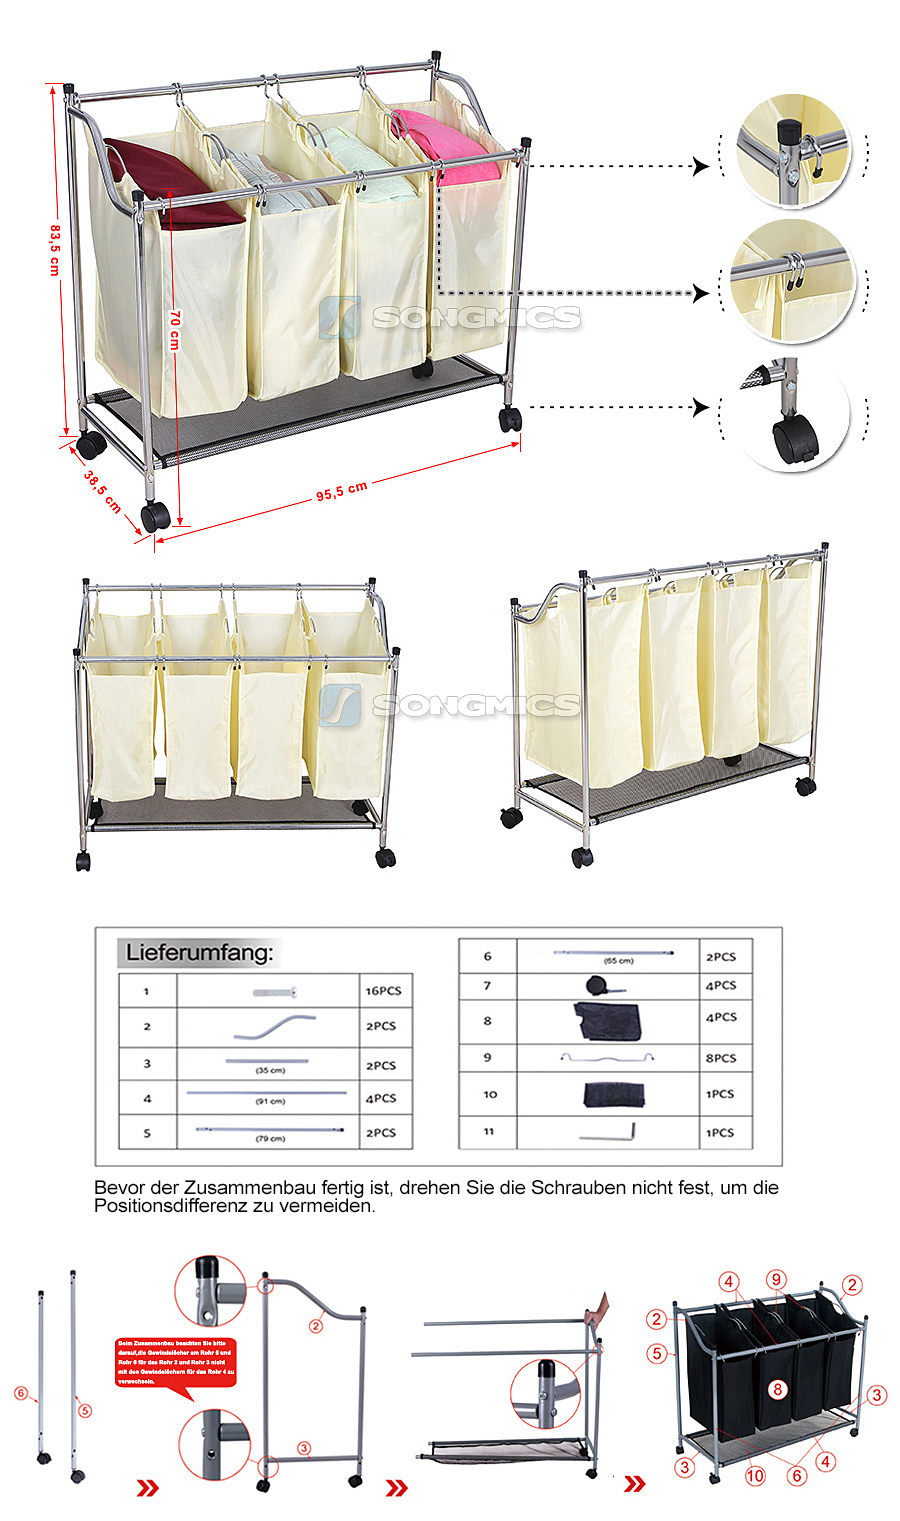 w schesortierer w schewagen w schesammler w schetonne mit 4 f cher beige lsf005s ebay. Black Bedroom Furniture Sets. Home Design Ideas